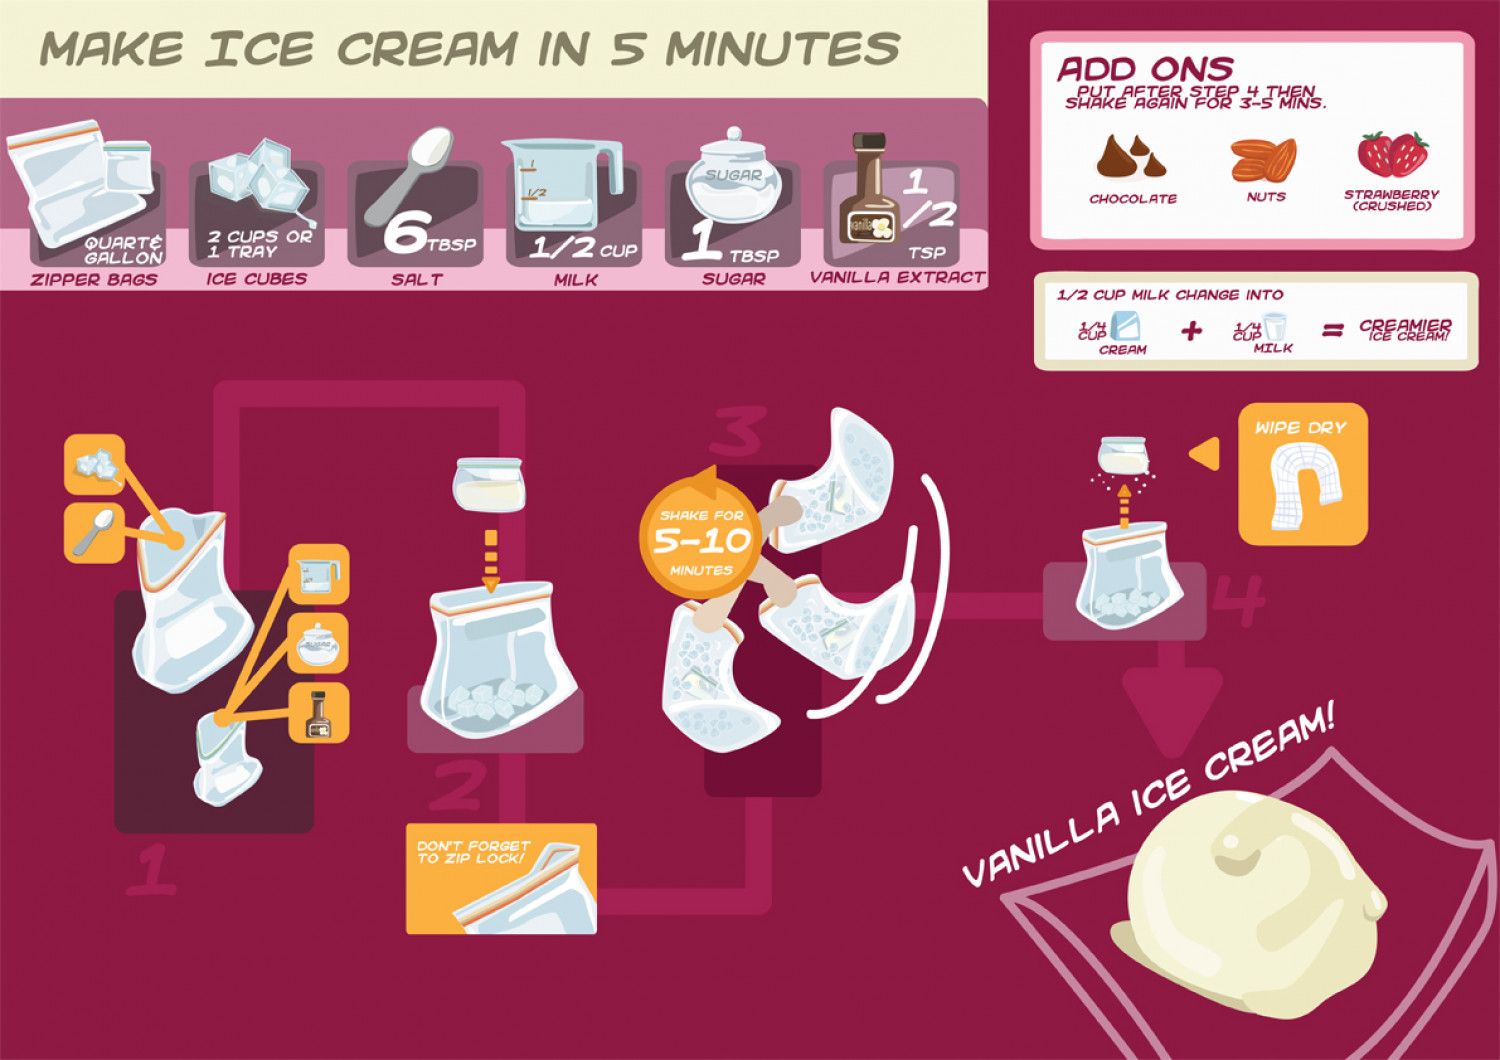 How to make ice cream in 5 minutes visual how to make ice cream in 5 minutes infographic ccuart Images